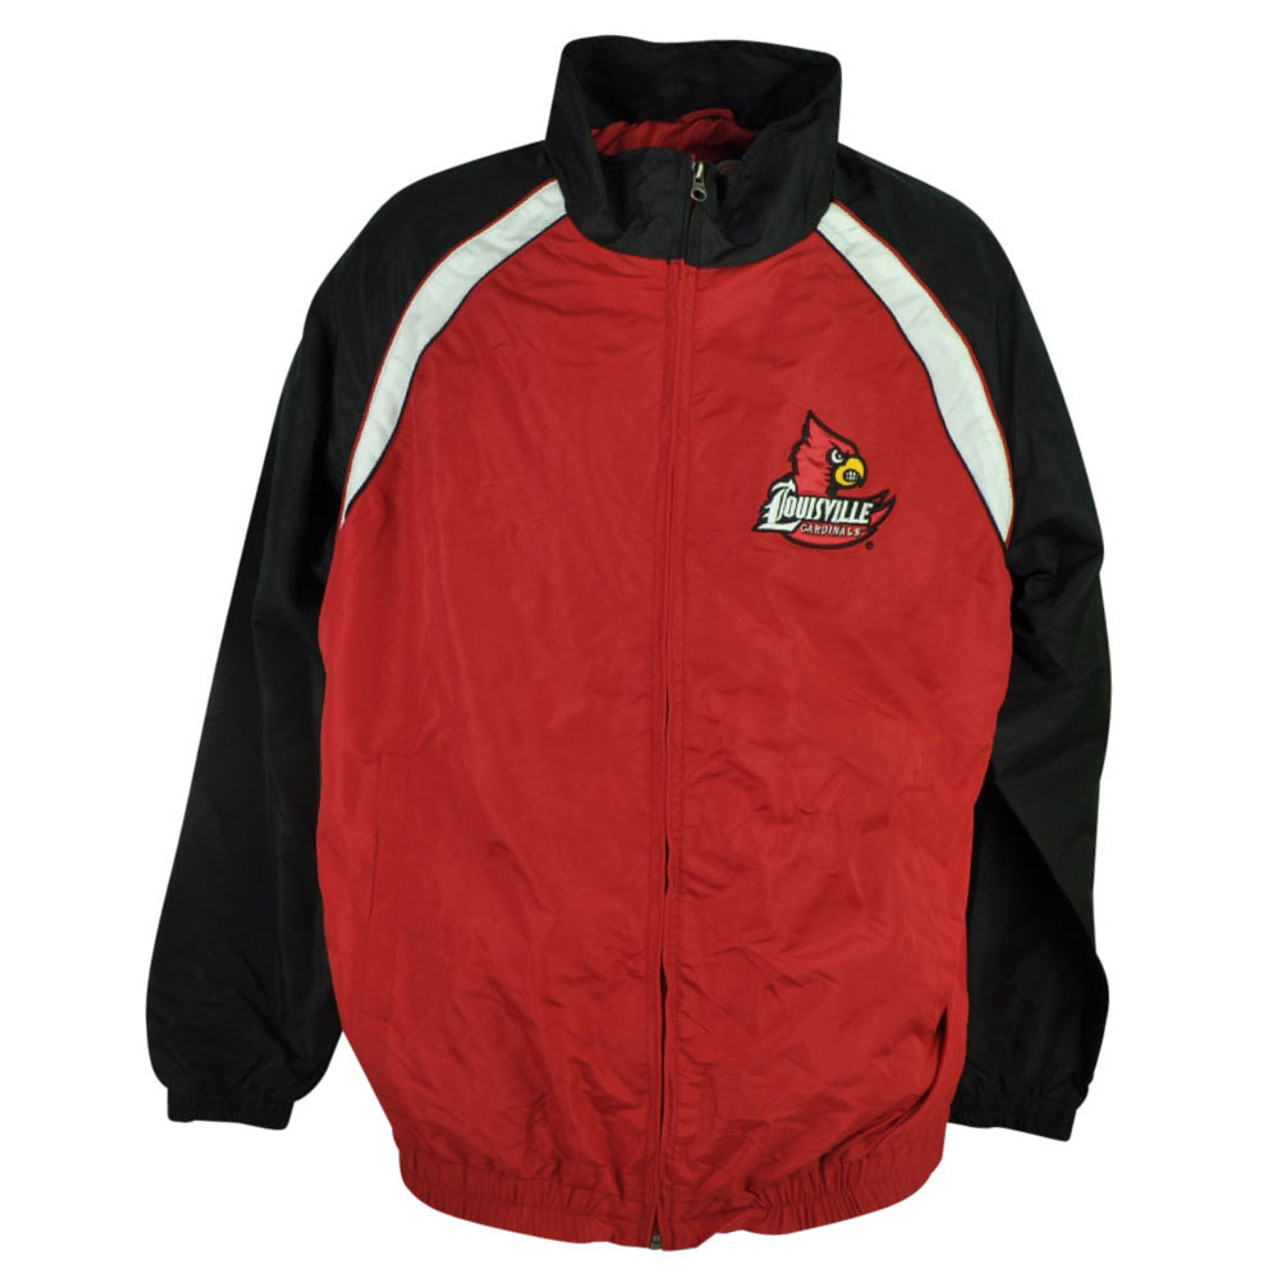 buy online 262f1 ed7a2 NCAA Louisville Cardinals Cards Clawson Jacket Mens Zipper Sweater Red  Winter